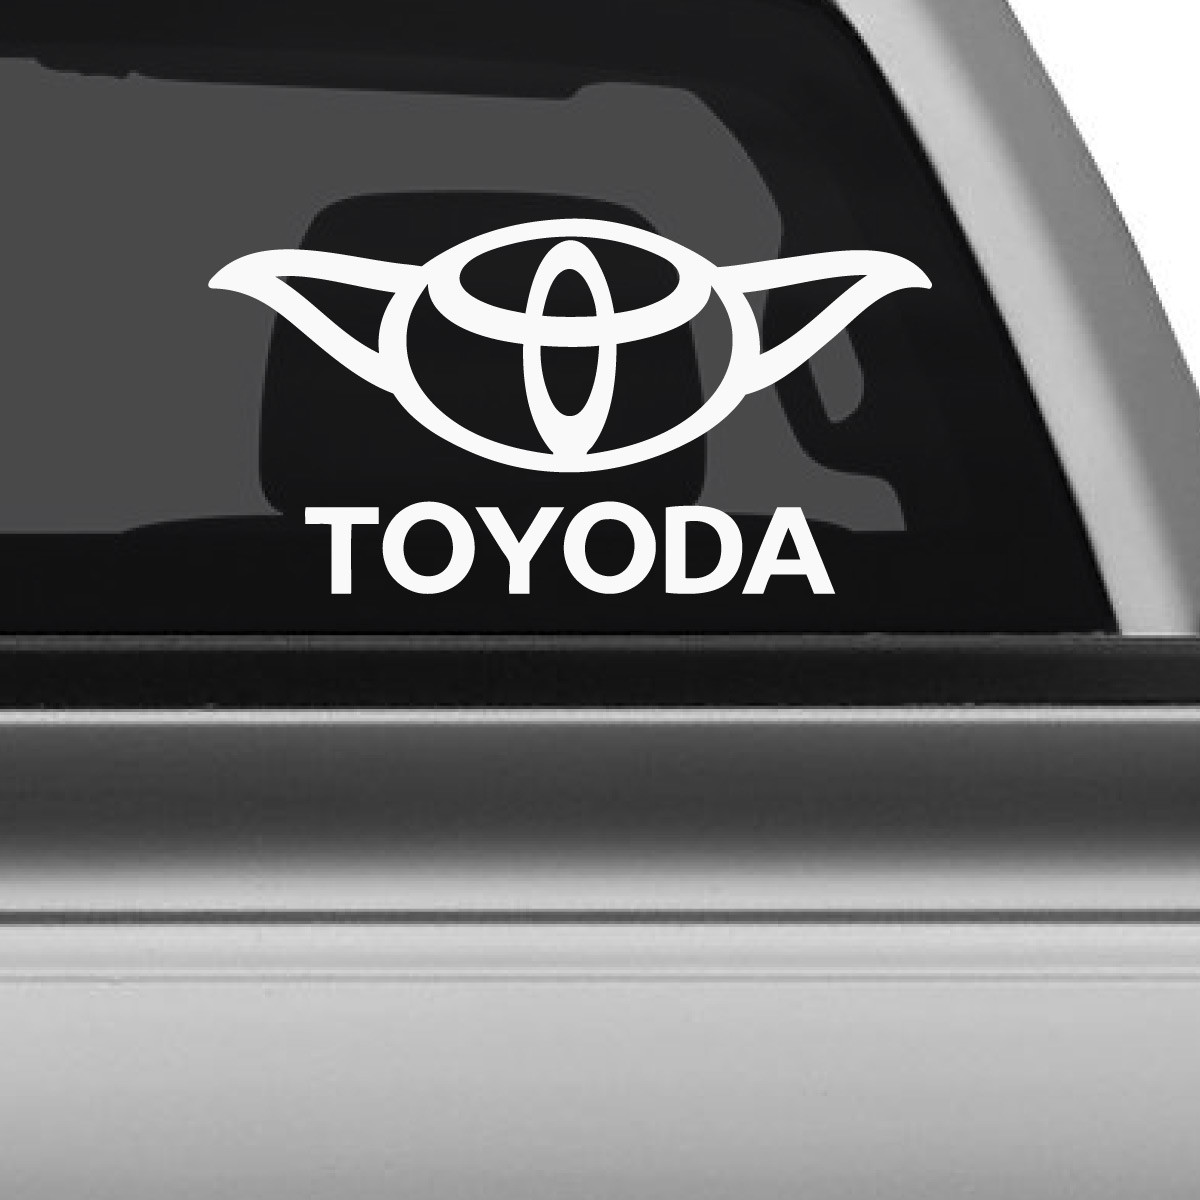 Toyoda toyota car decal price 11 99 http d3d71ba2asa5oz cloudfront net 12019661 images 1431